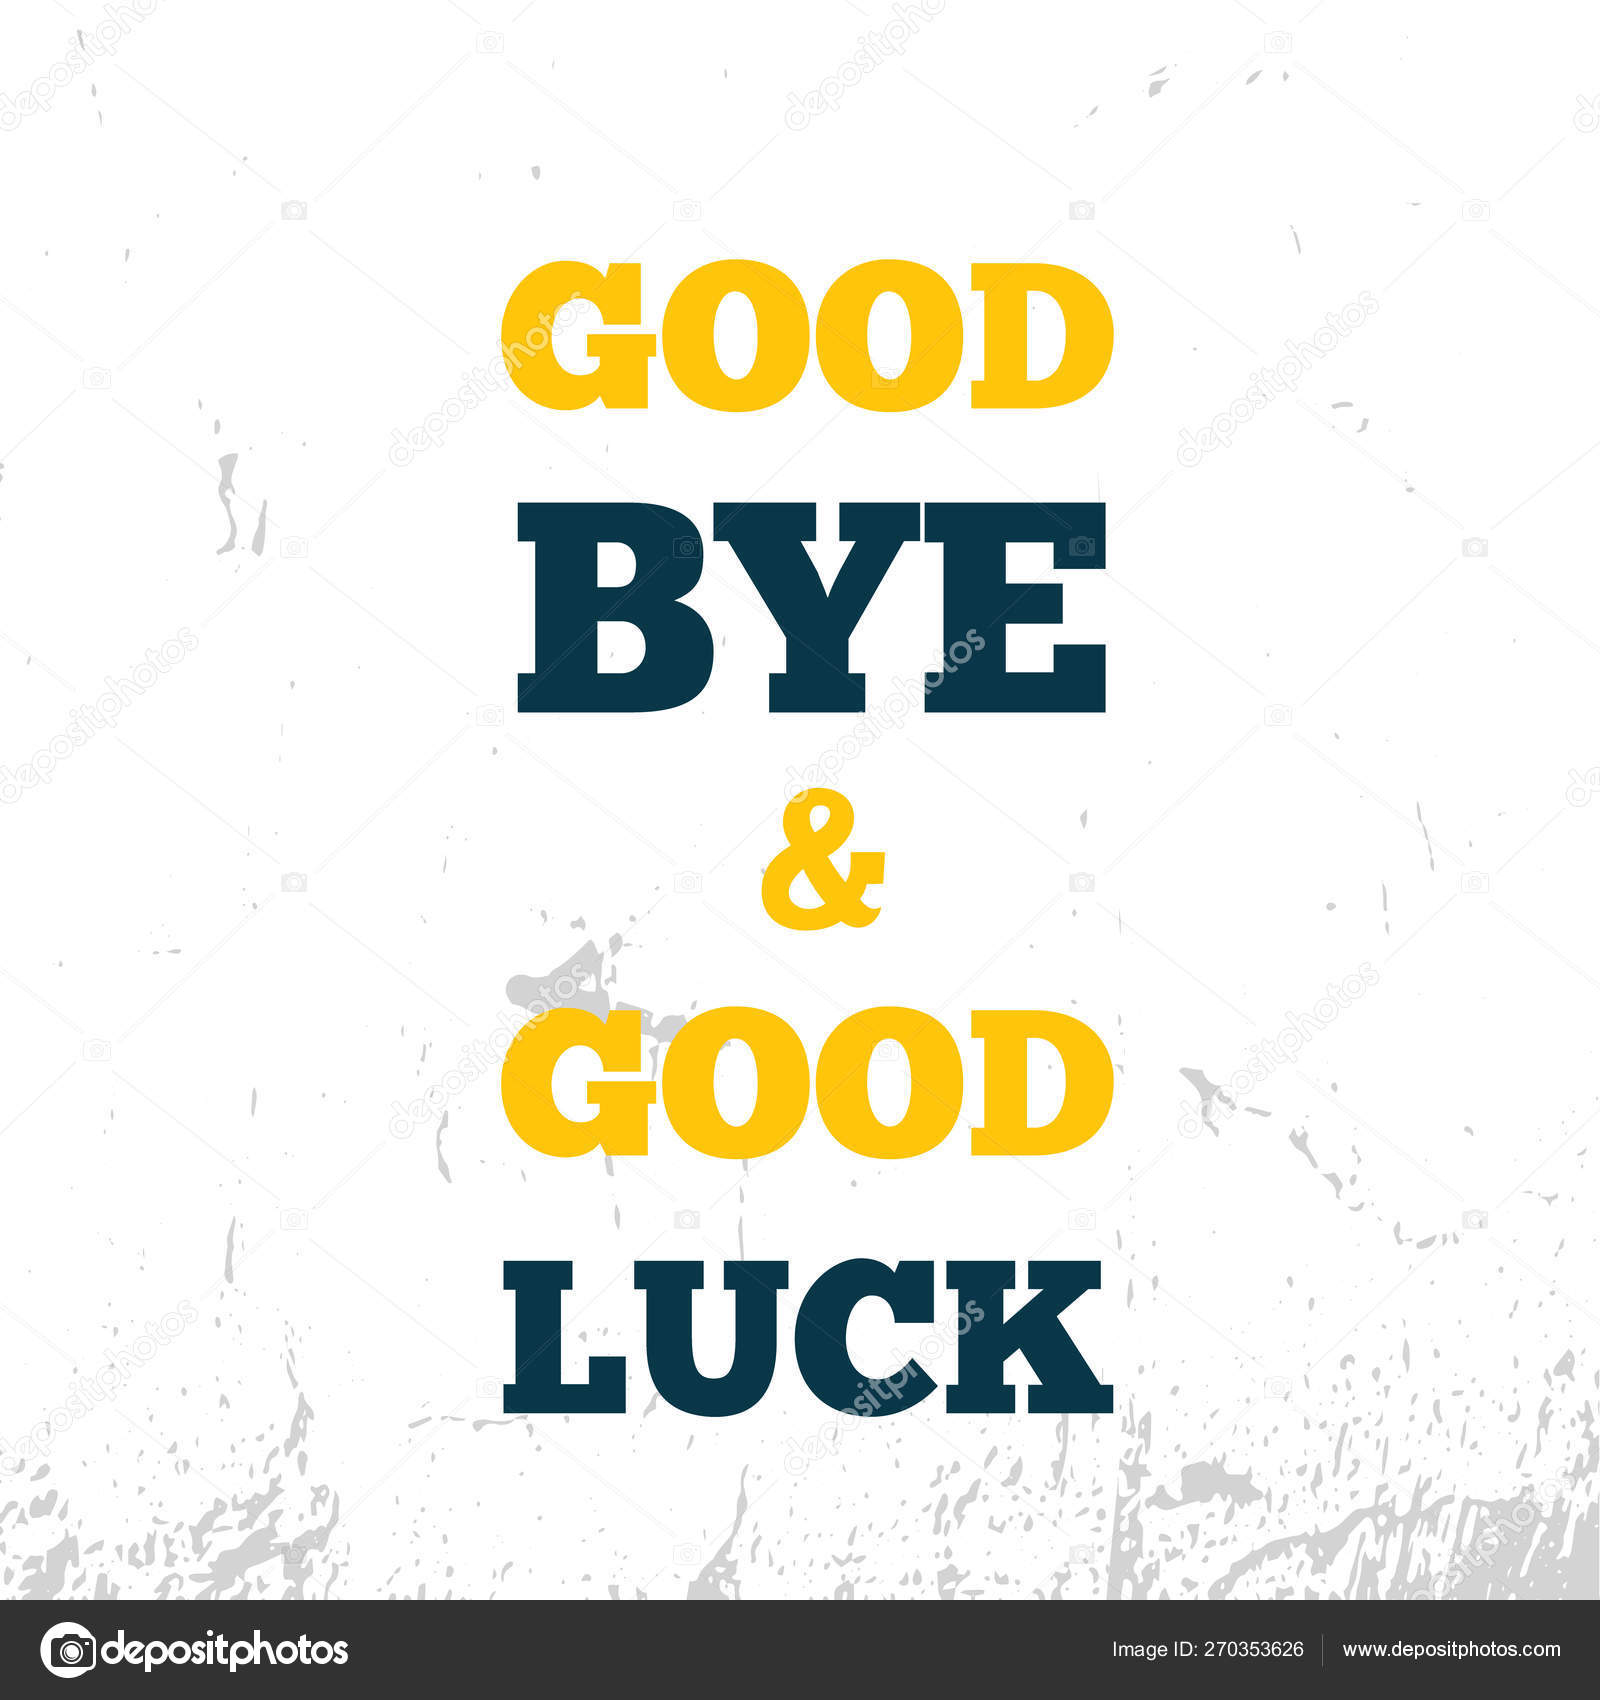 Good bye and good luck quote Motivational wall art on dark ...